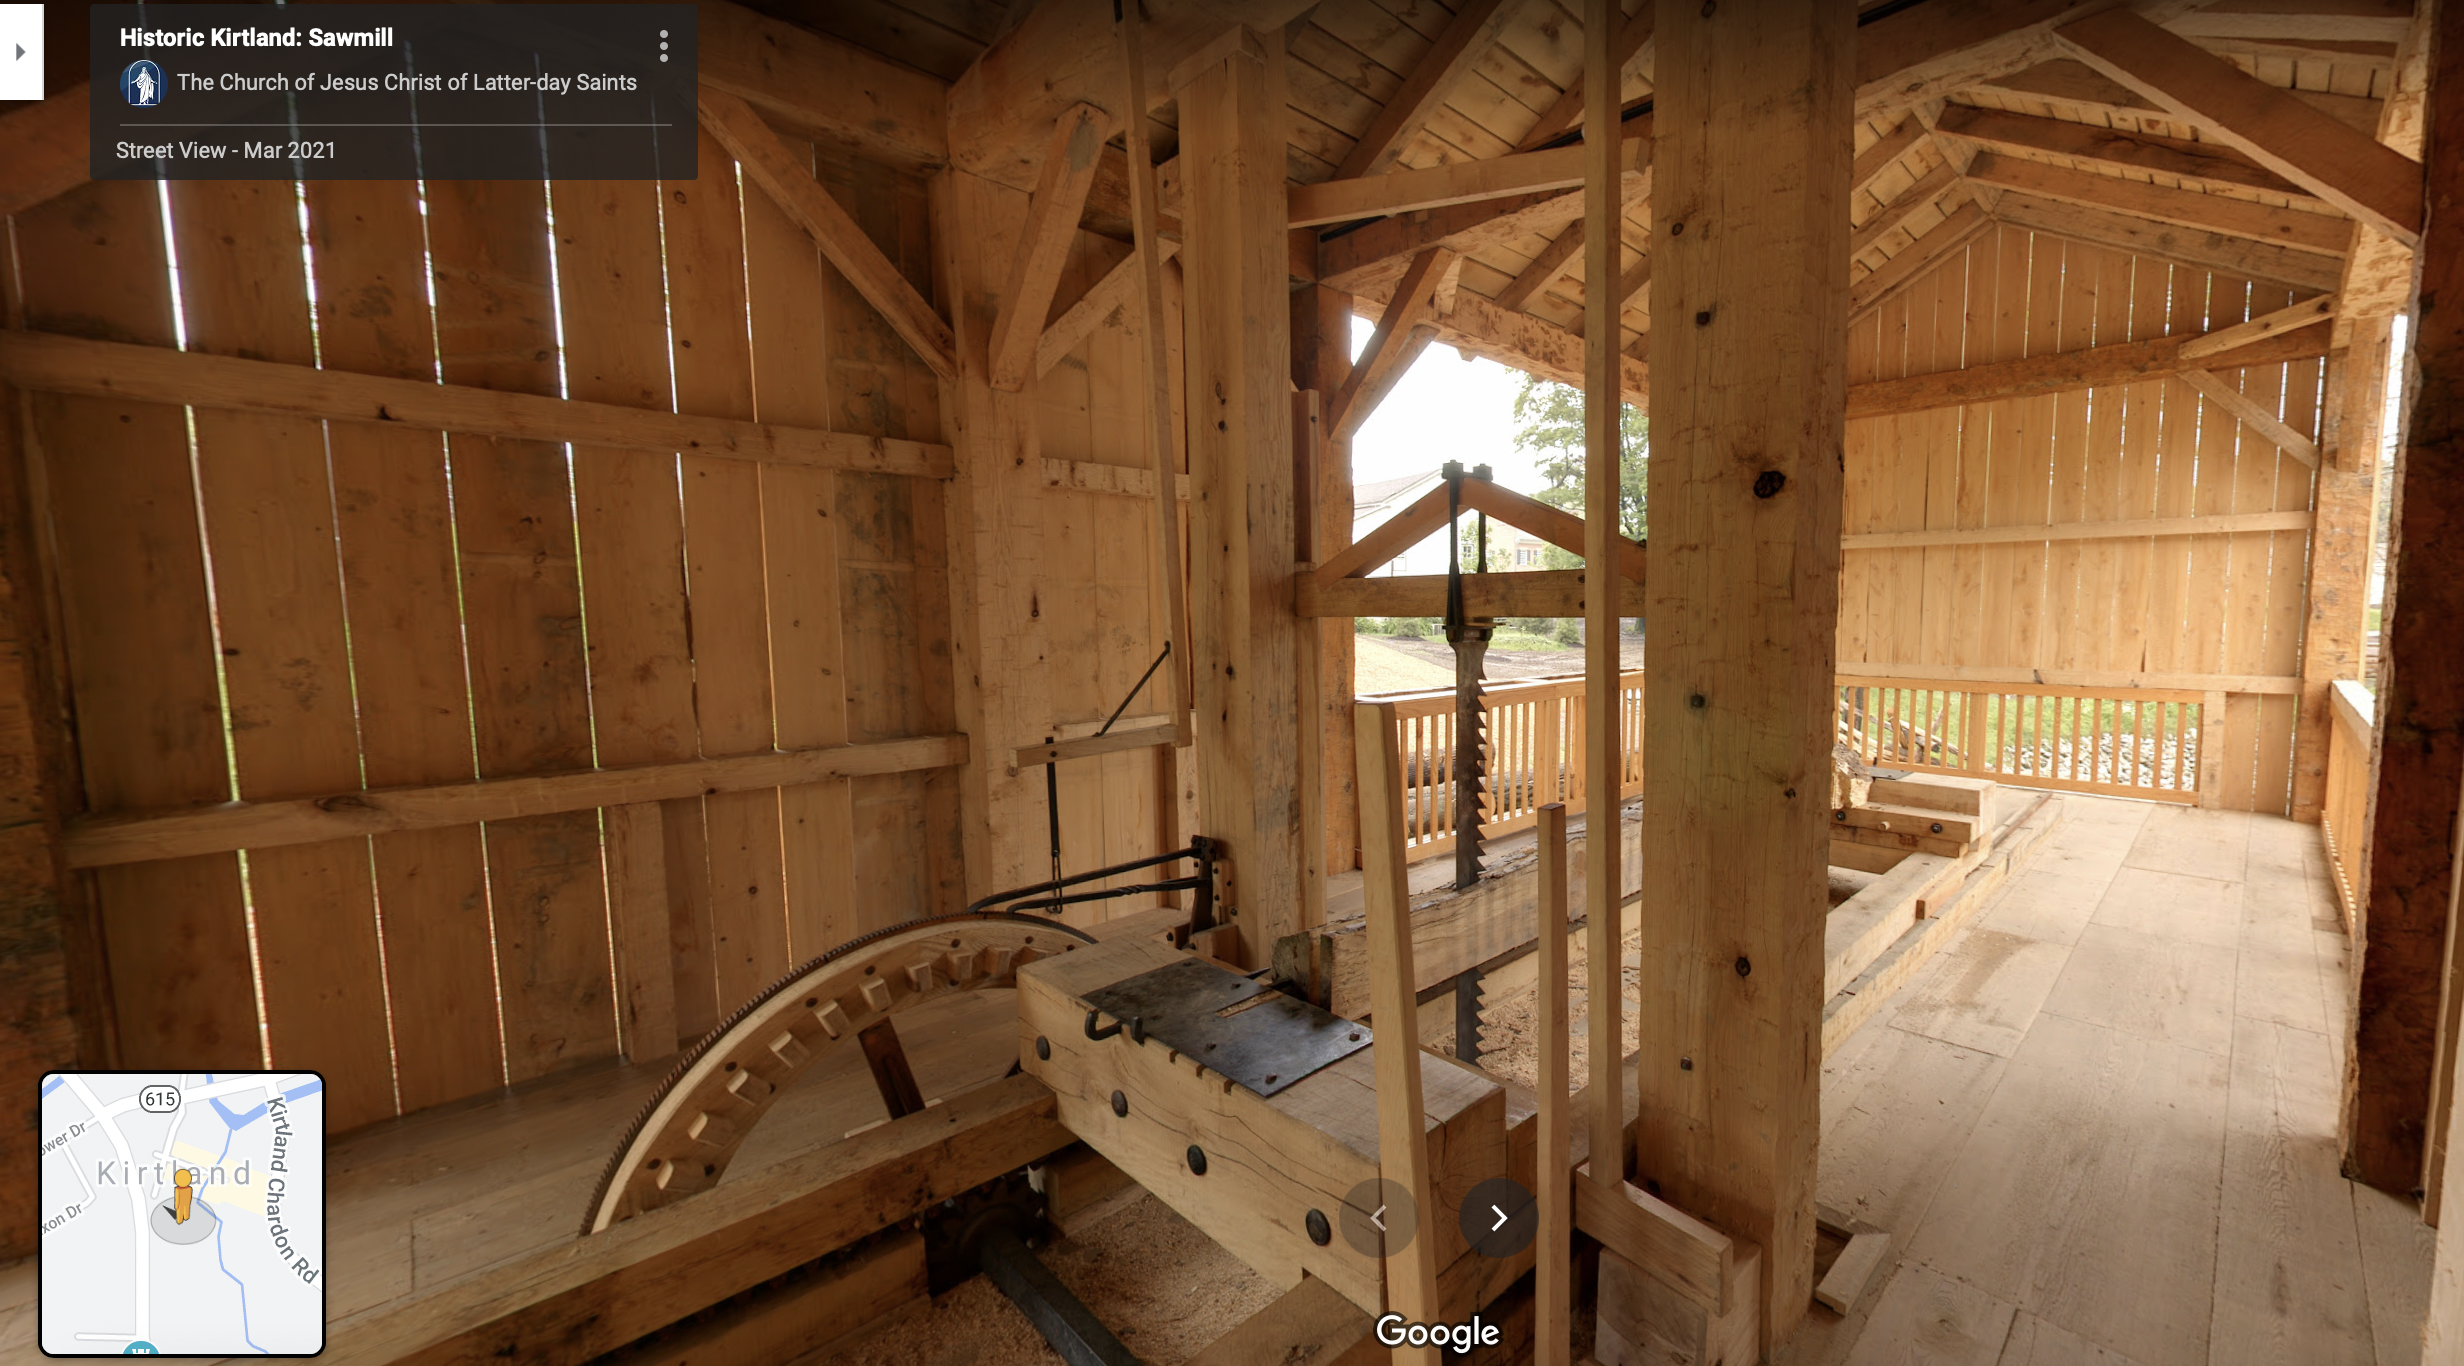 A screenshot of the 360 view of the Kirtland Sawmill on Google Maps